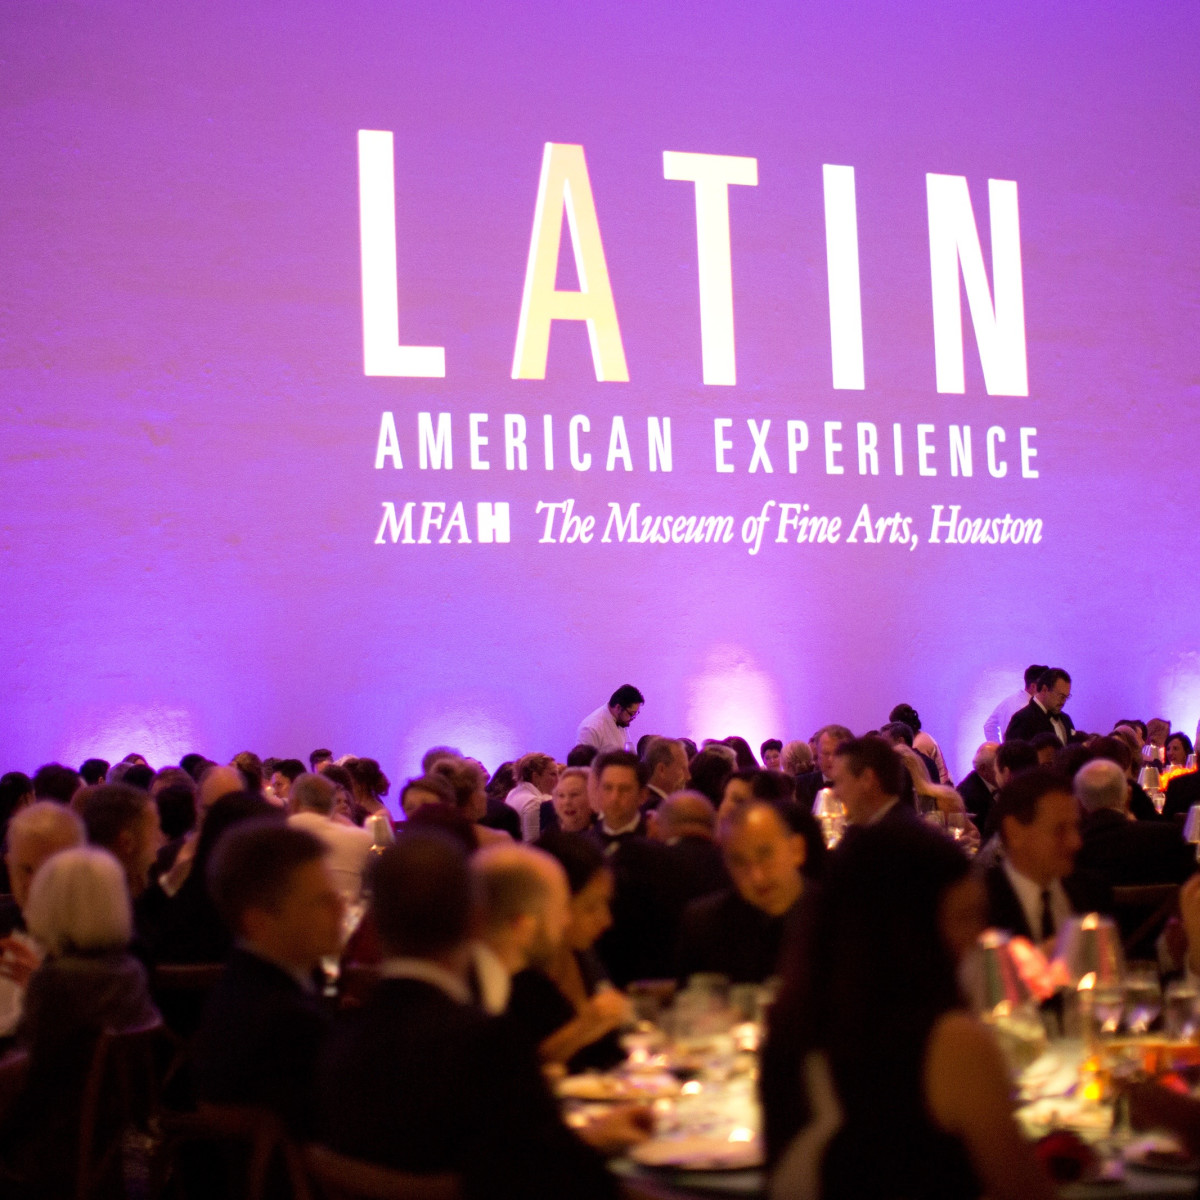 Latin American Experience atmosphere